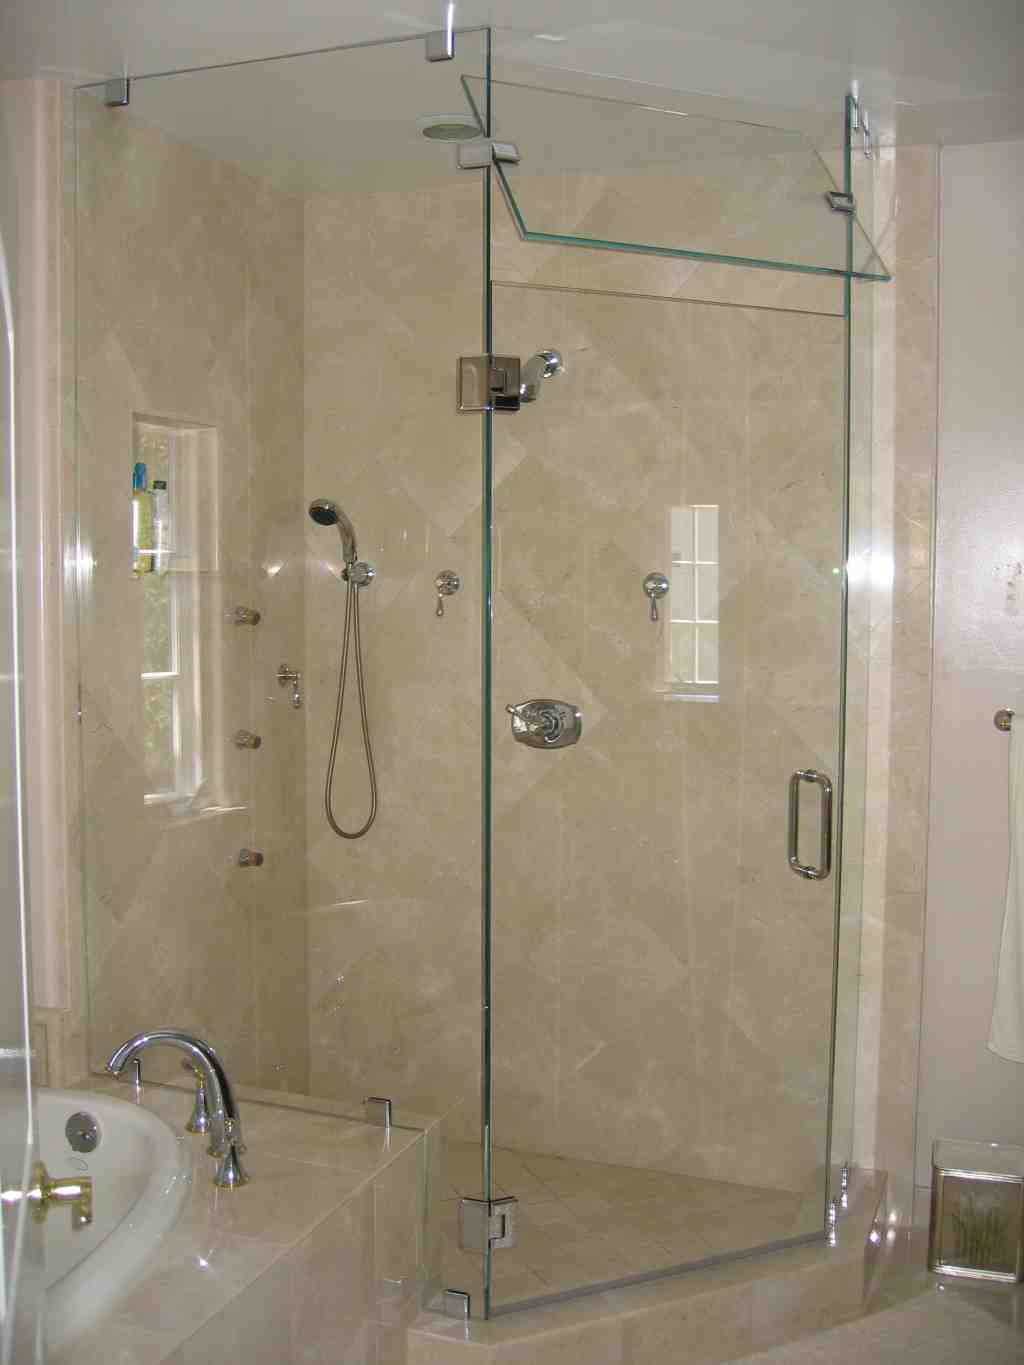 Primitive country bathroom ideas - Frameless Glass Shower Doors Home Depot Decor Ideasdecor Ideas